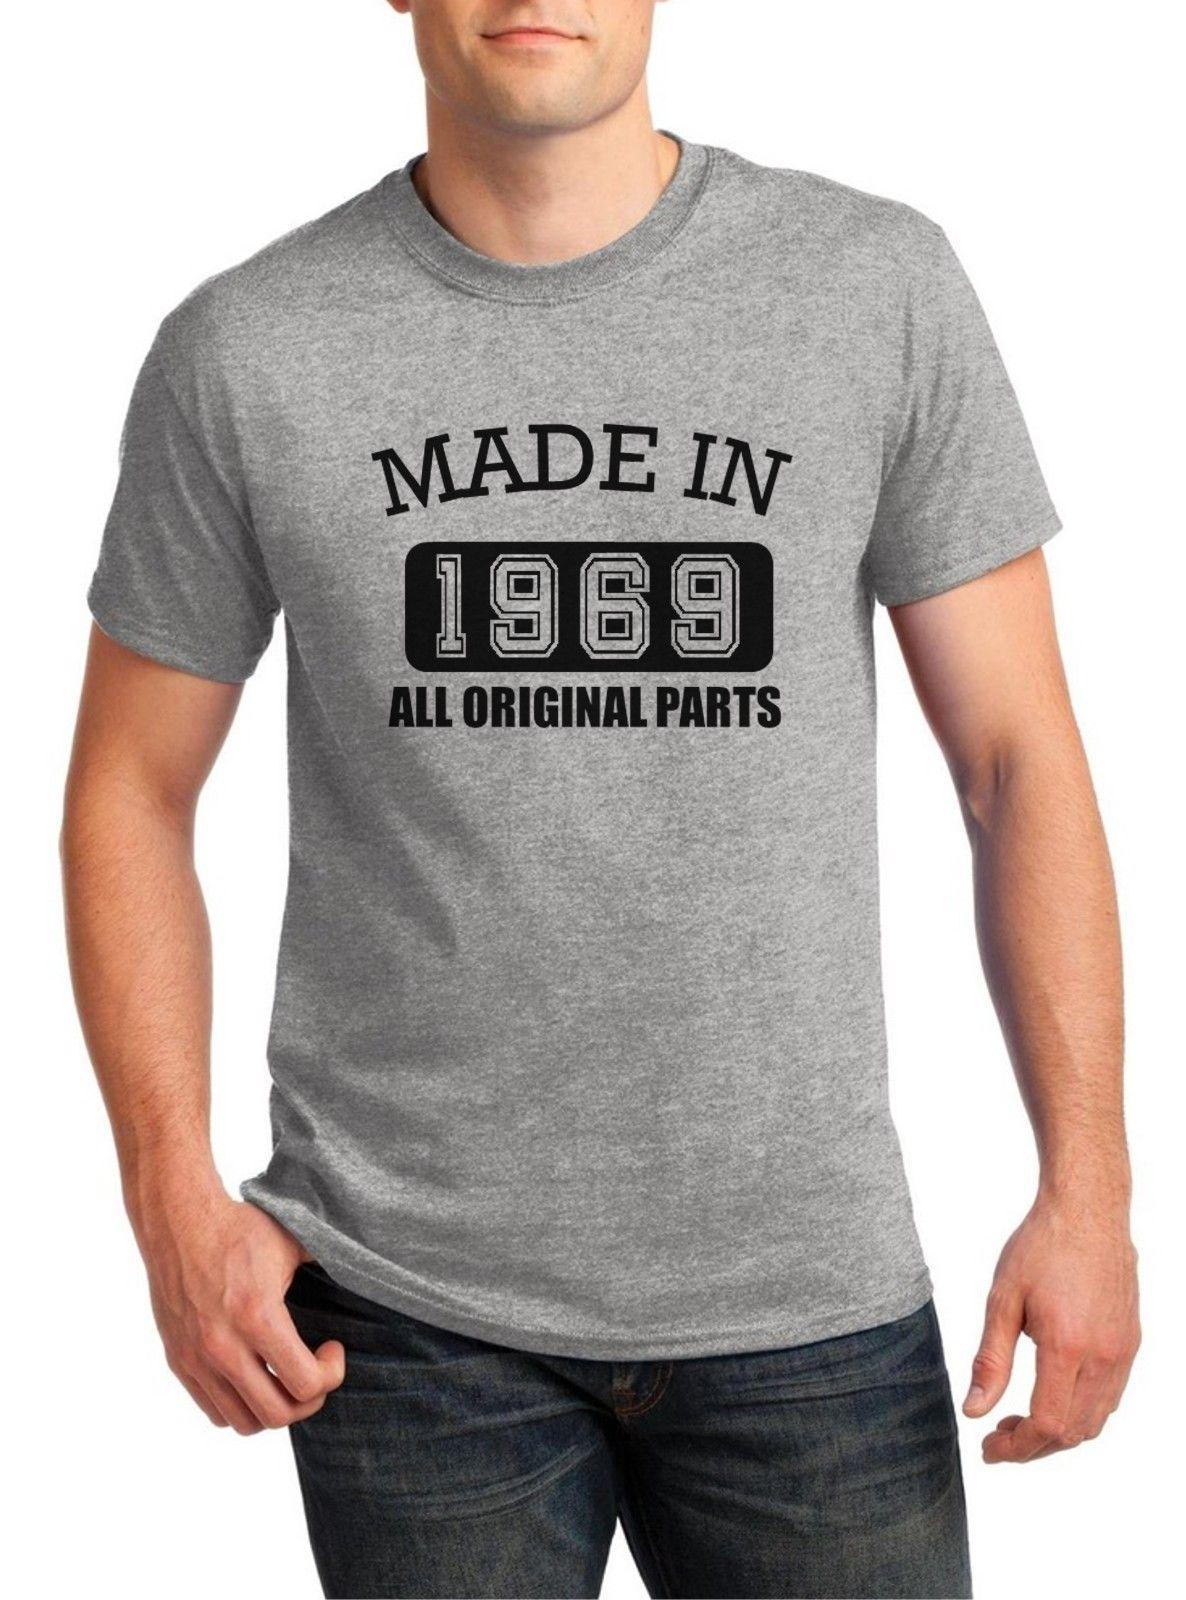 Made in 1969 All Original Parts T Shirt 50th Birthday Party T-Shirt Bday Gift 2018 Summer 100% Cotton Hipster O-Neck Casual Short Sleeve